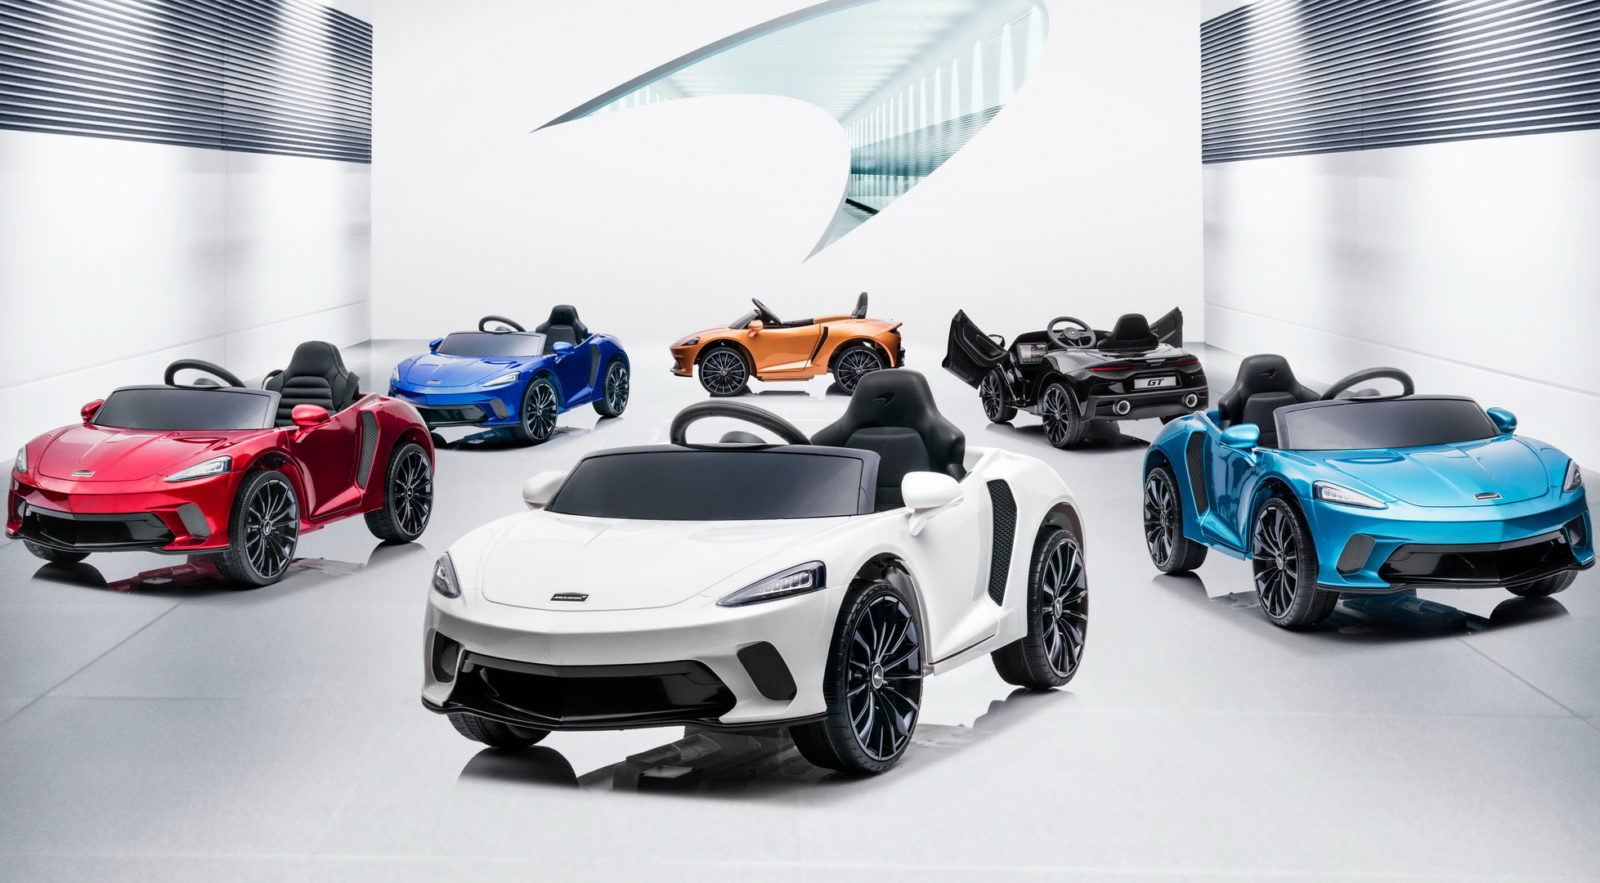 new-gt-ride-on-is-a-mclaren-you-can-finally-afford,-prices-start-from-$230